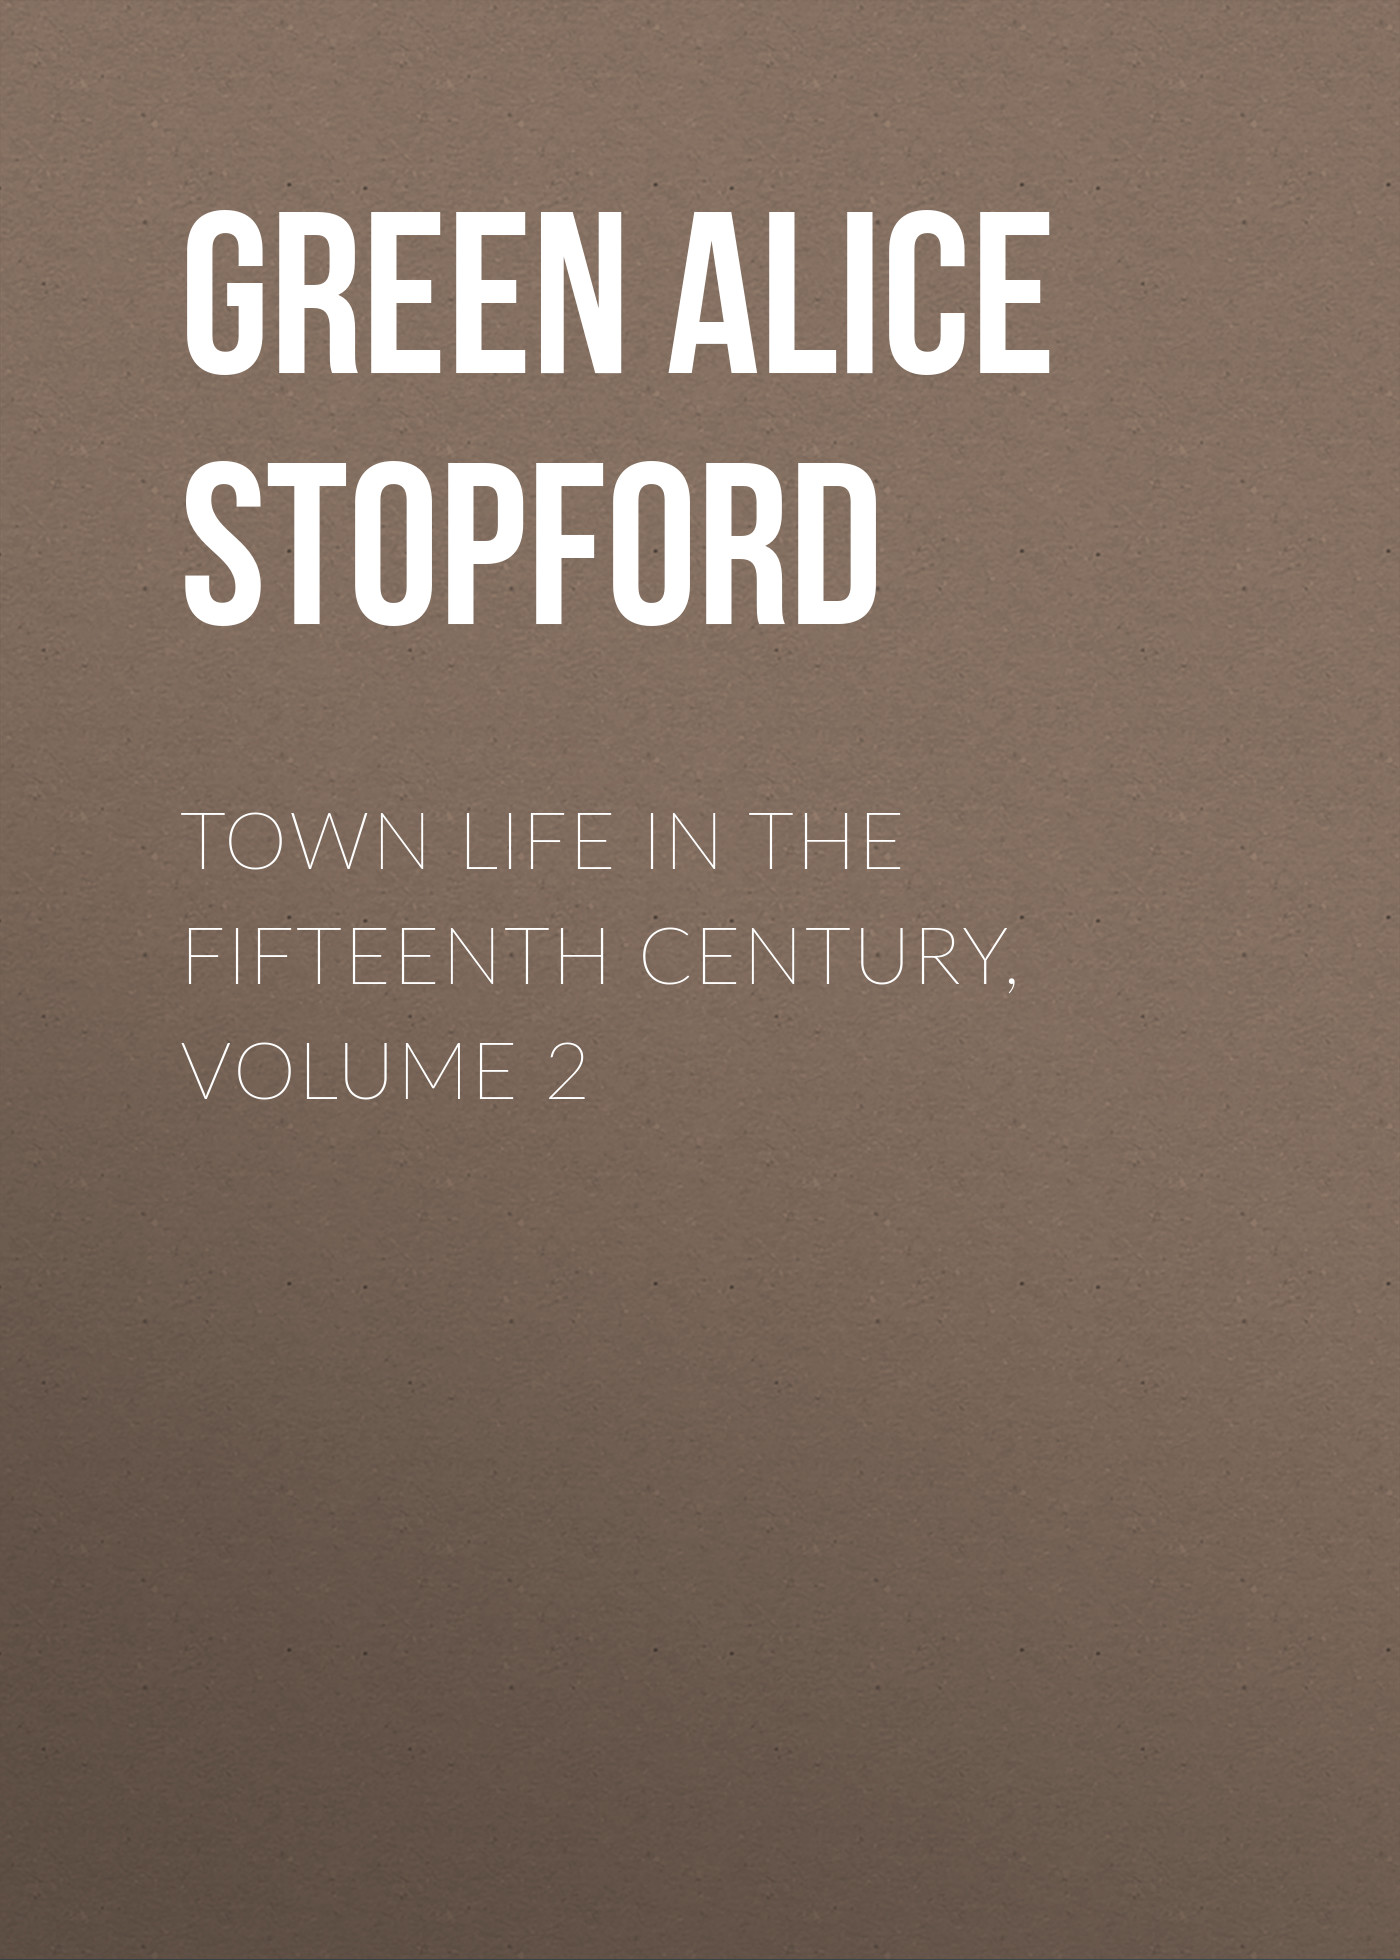 Green Alice Stopford Town Life in the Fifteenth Century, Volume 2 green alice stopford town life in the fifteenth century volume 2